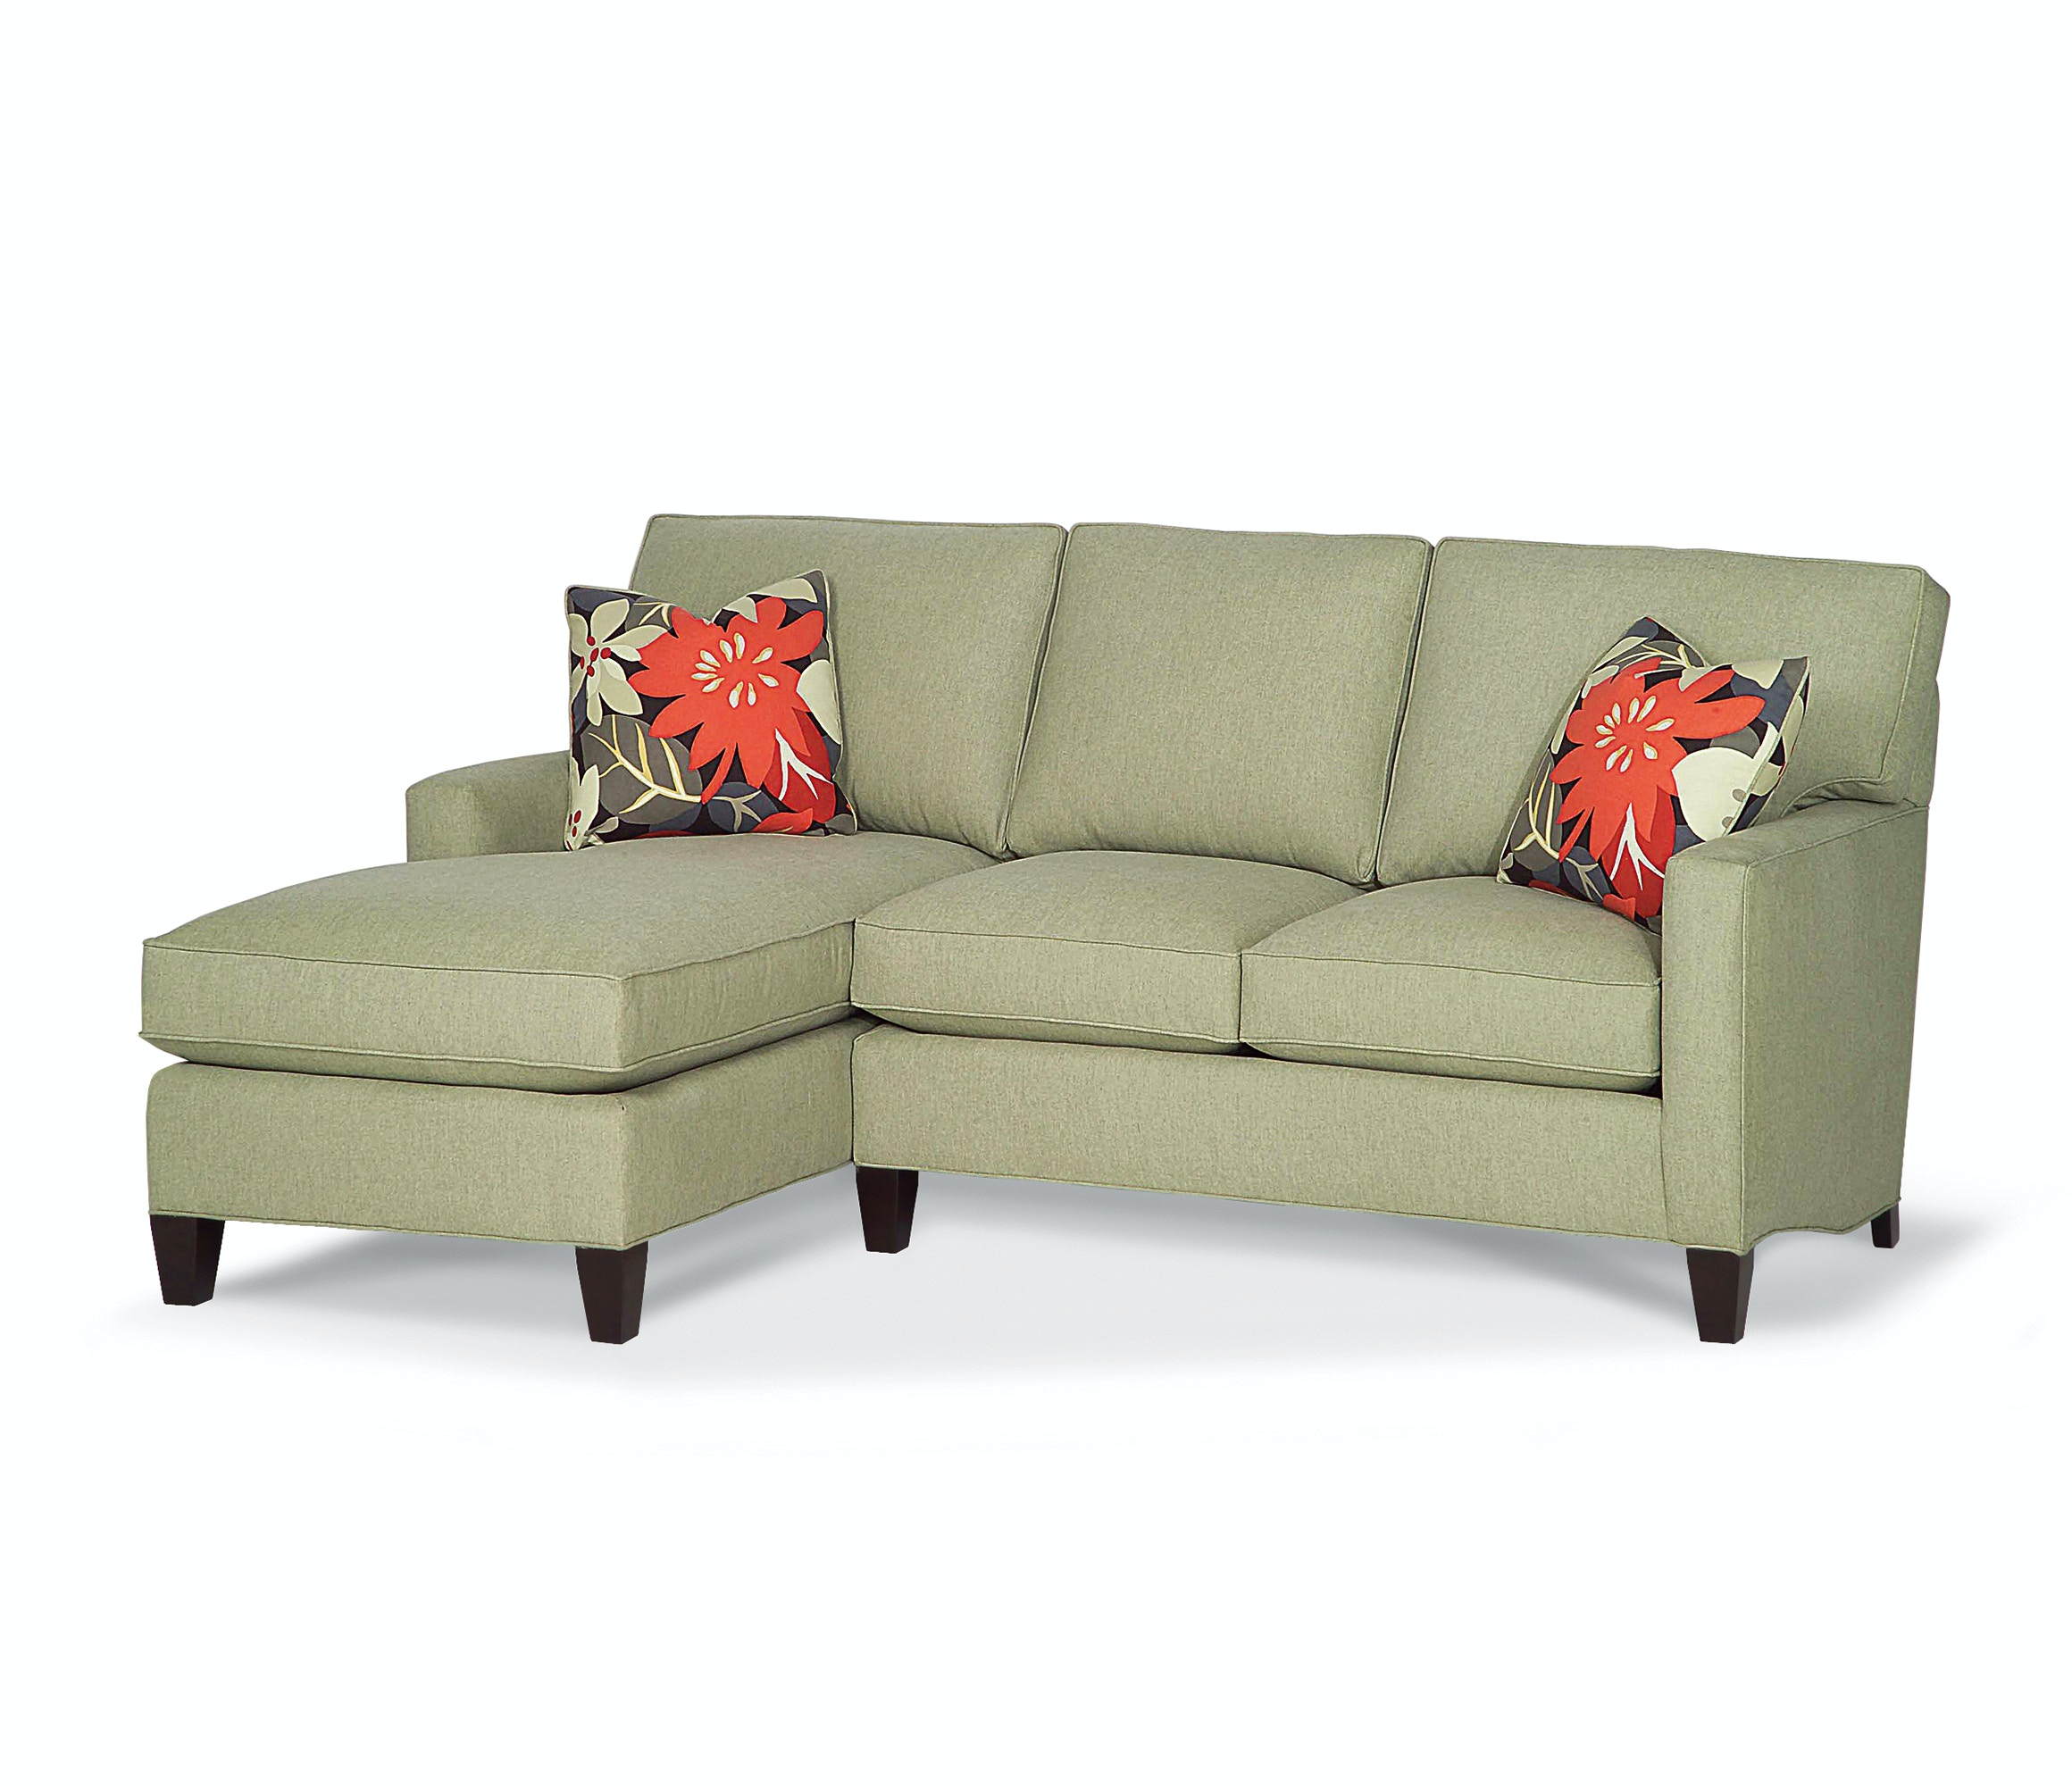 Taylor King Furniture Cozy Sectional K122 Sectional